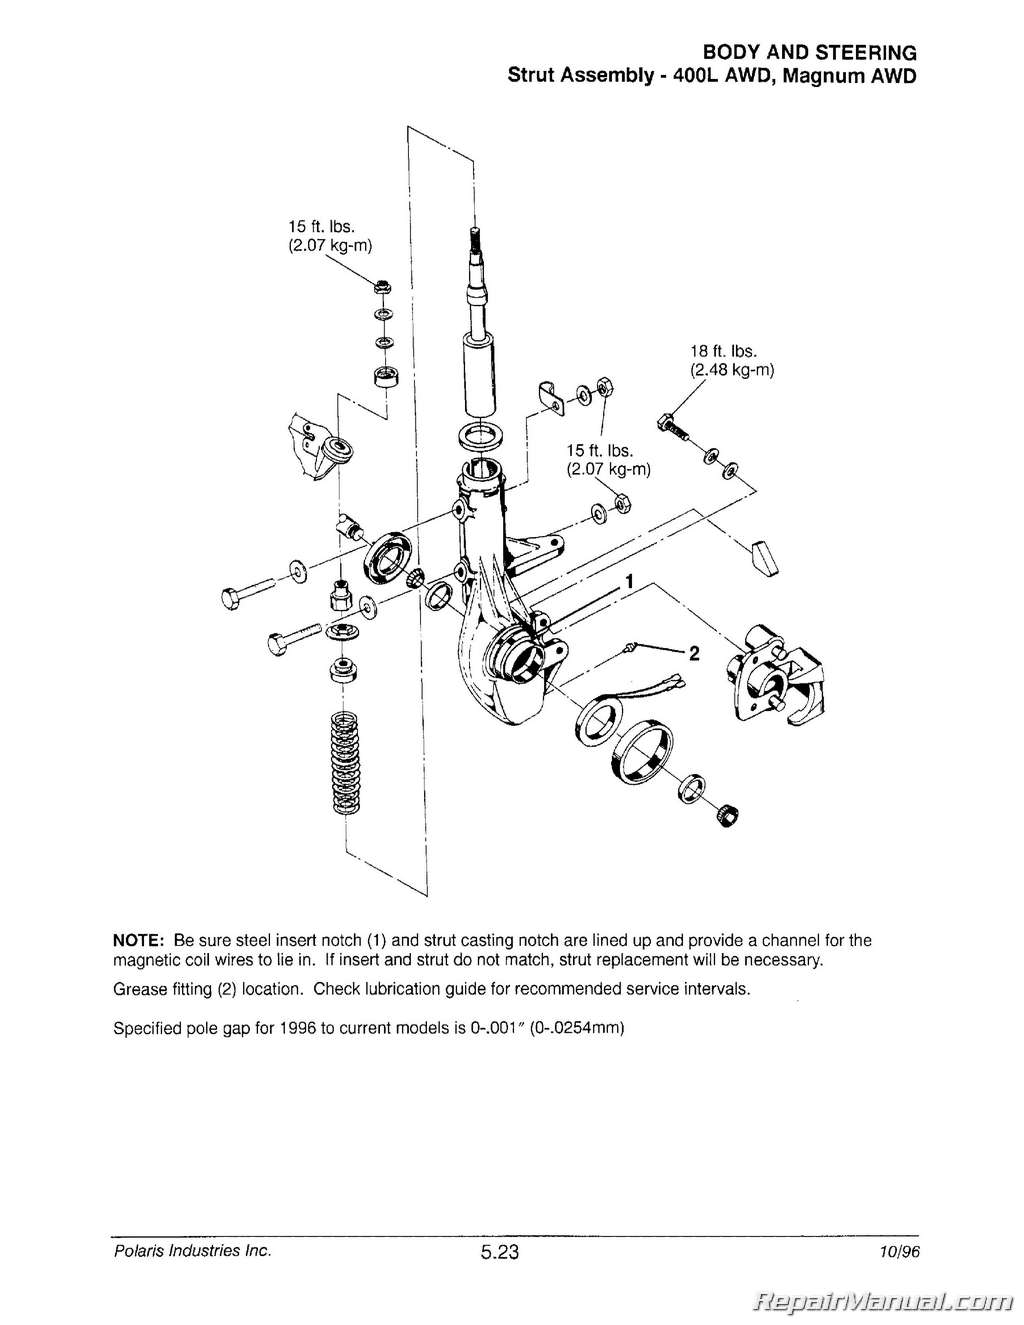 1996 1998 Polaris ATV and Light Utility Vehicle Repair Manual2 wiring diagram polaris xplorer 300 the wiring diagram Polaris Magnum 325 Carburetor Diagram at n-0.co